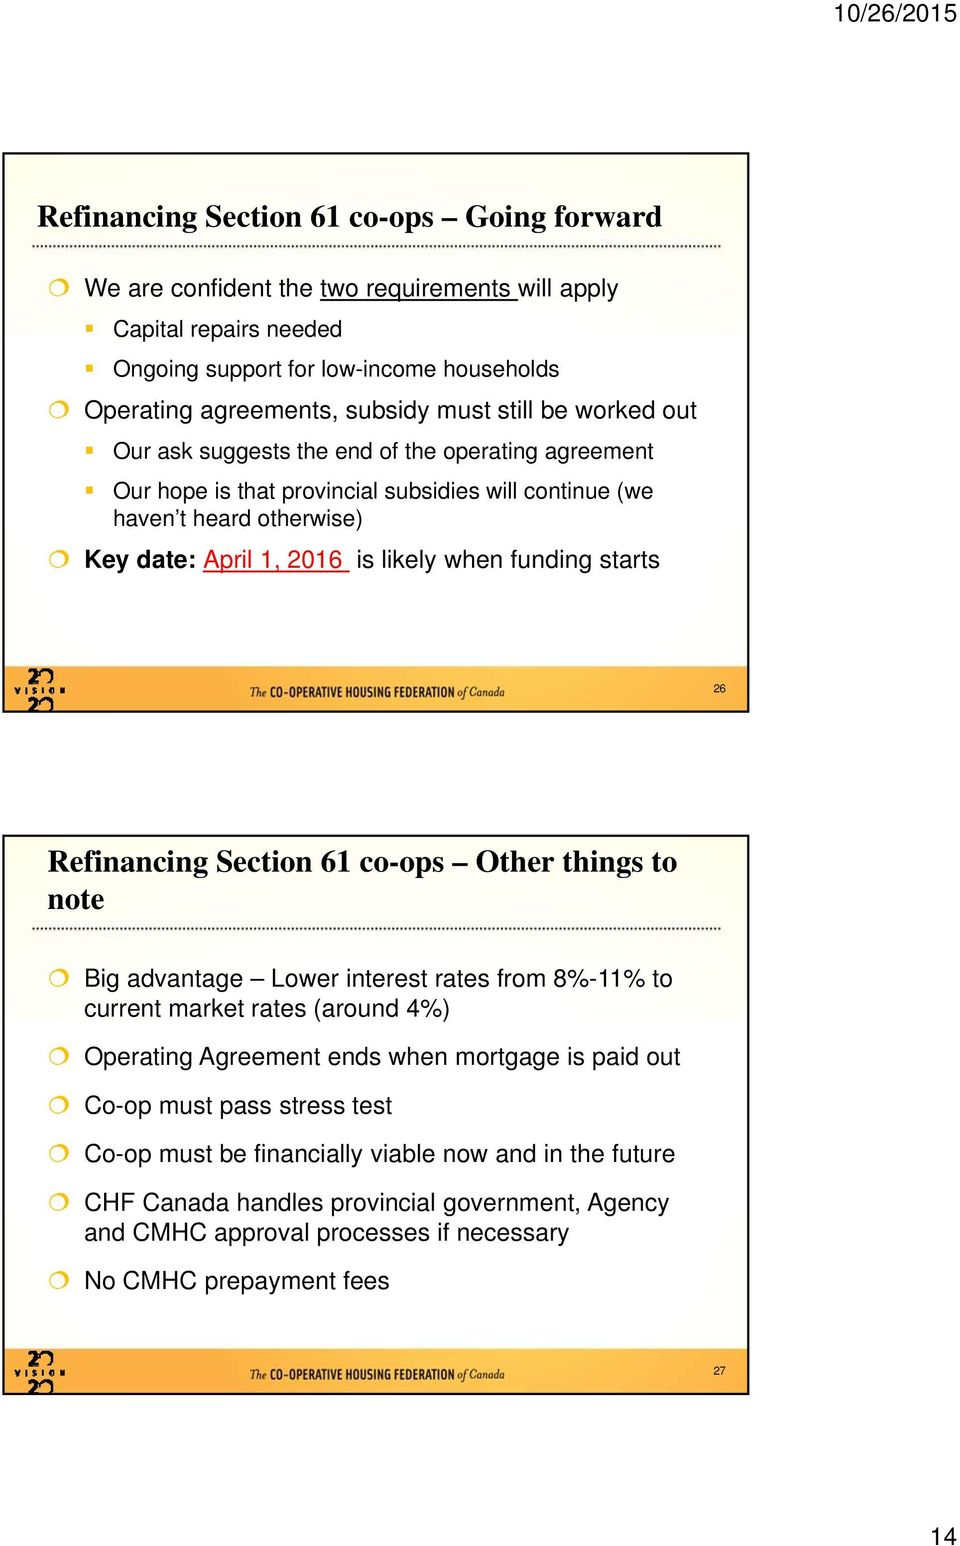 starts 26 Refinancing Sectin 61 c-ps Other things t nte Big advantage Lwer interest rates frm 8%-11% t current market rates (arund 4%) Operating Agreement ends when mrtgage is paid ut